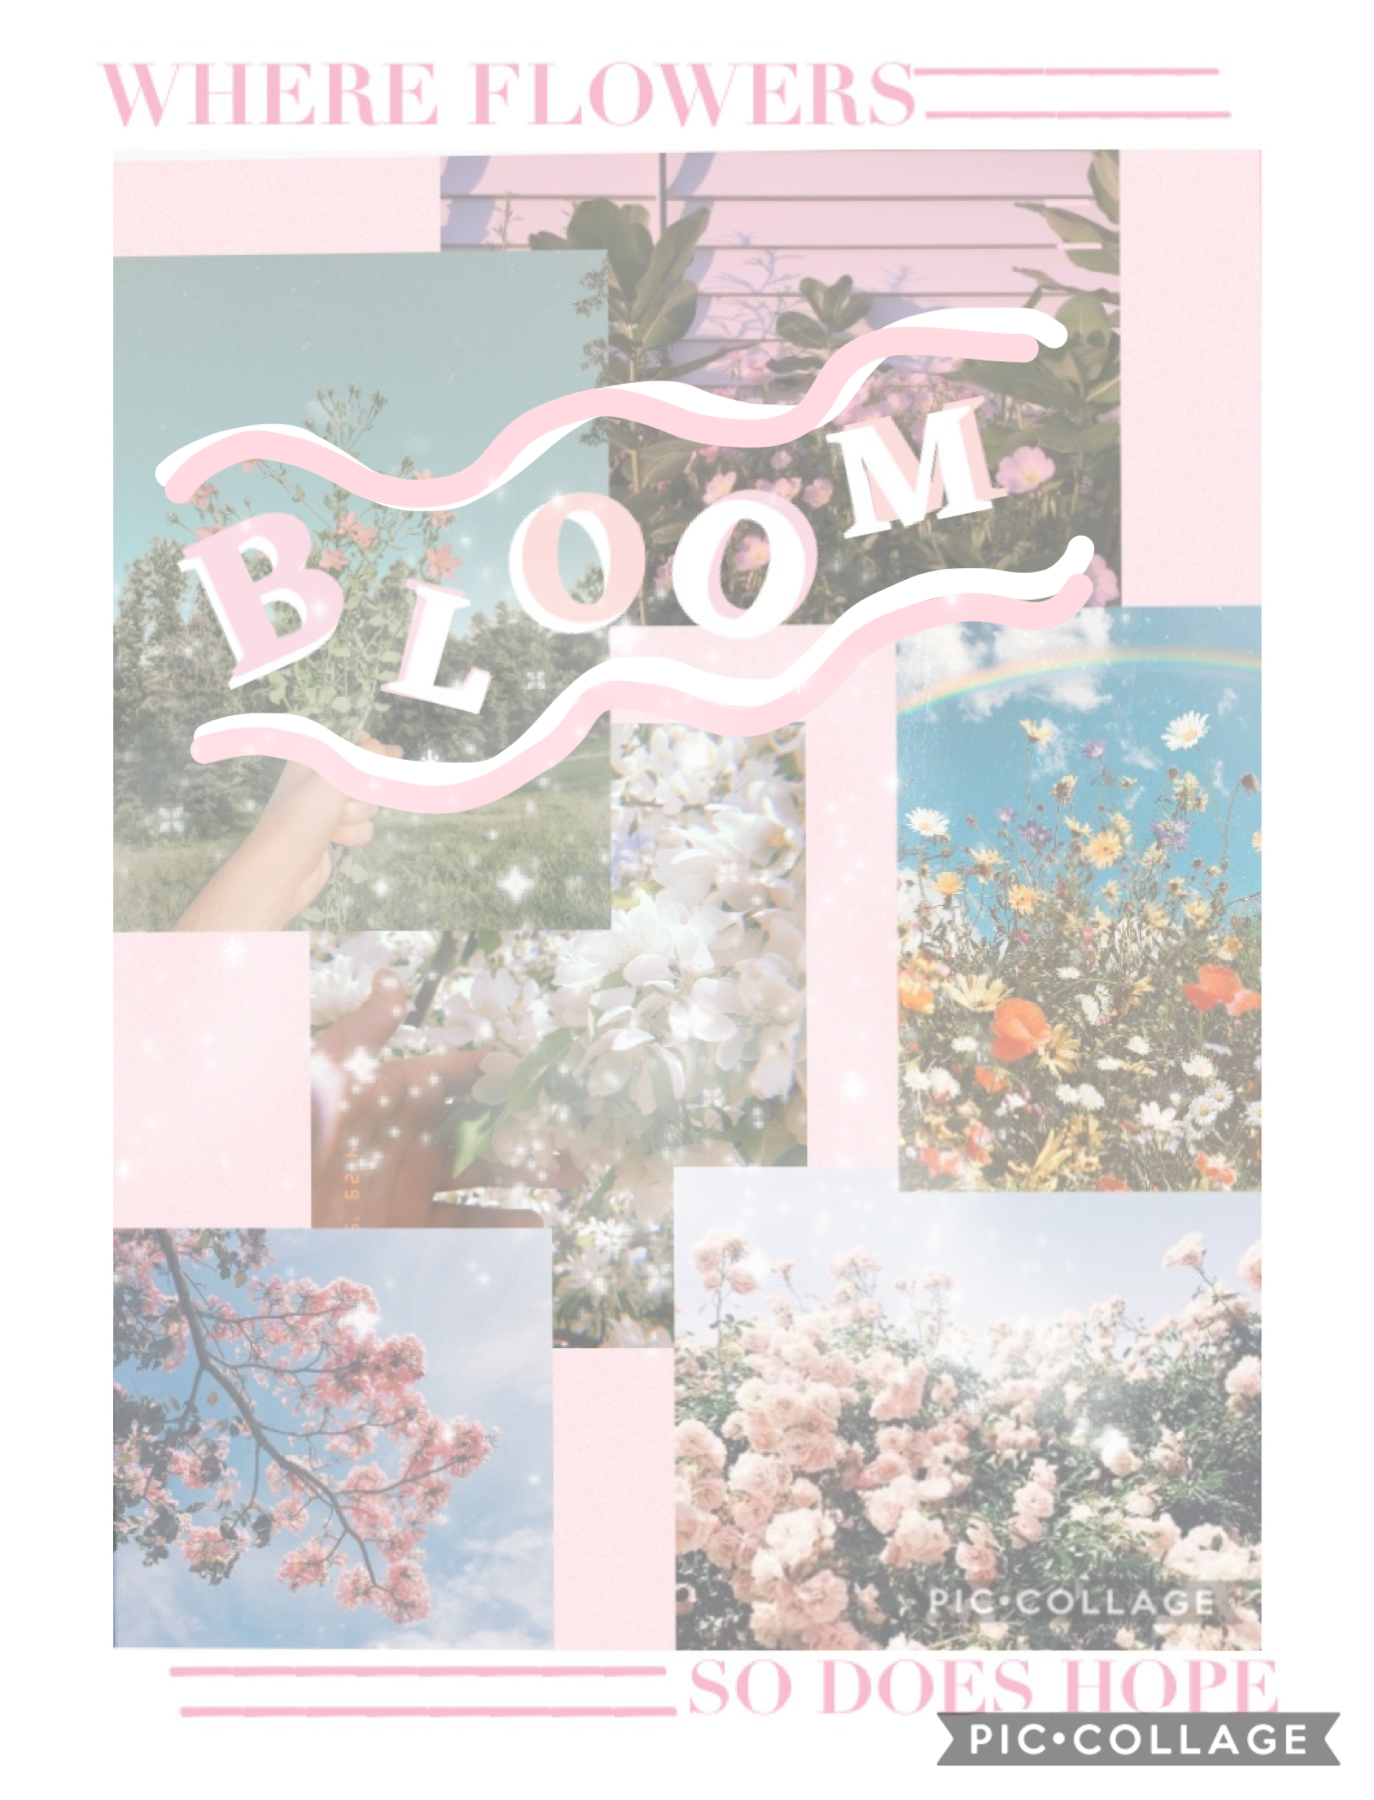 ✨tap✨ hello wonderful people! welcome to the first real collage on our account! this was a collab between all three of us! i hope you enjoy our account!  -bloomingbadgers-